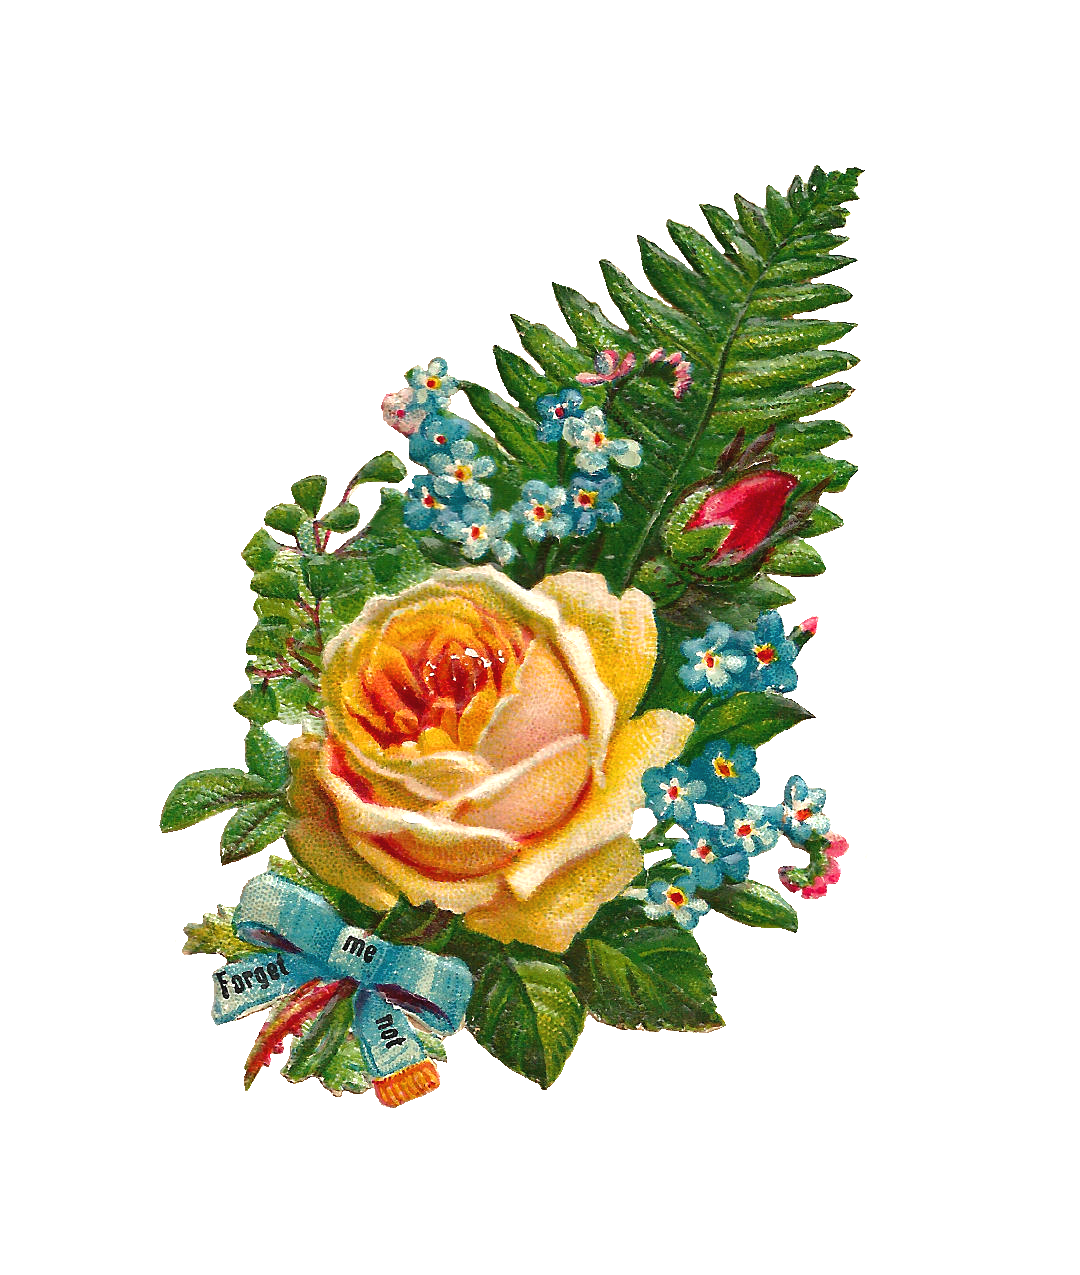 Free Digital Flower Clip Art Yellow Rose and